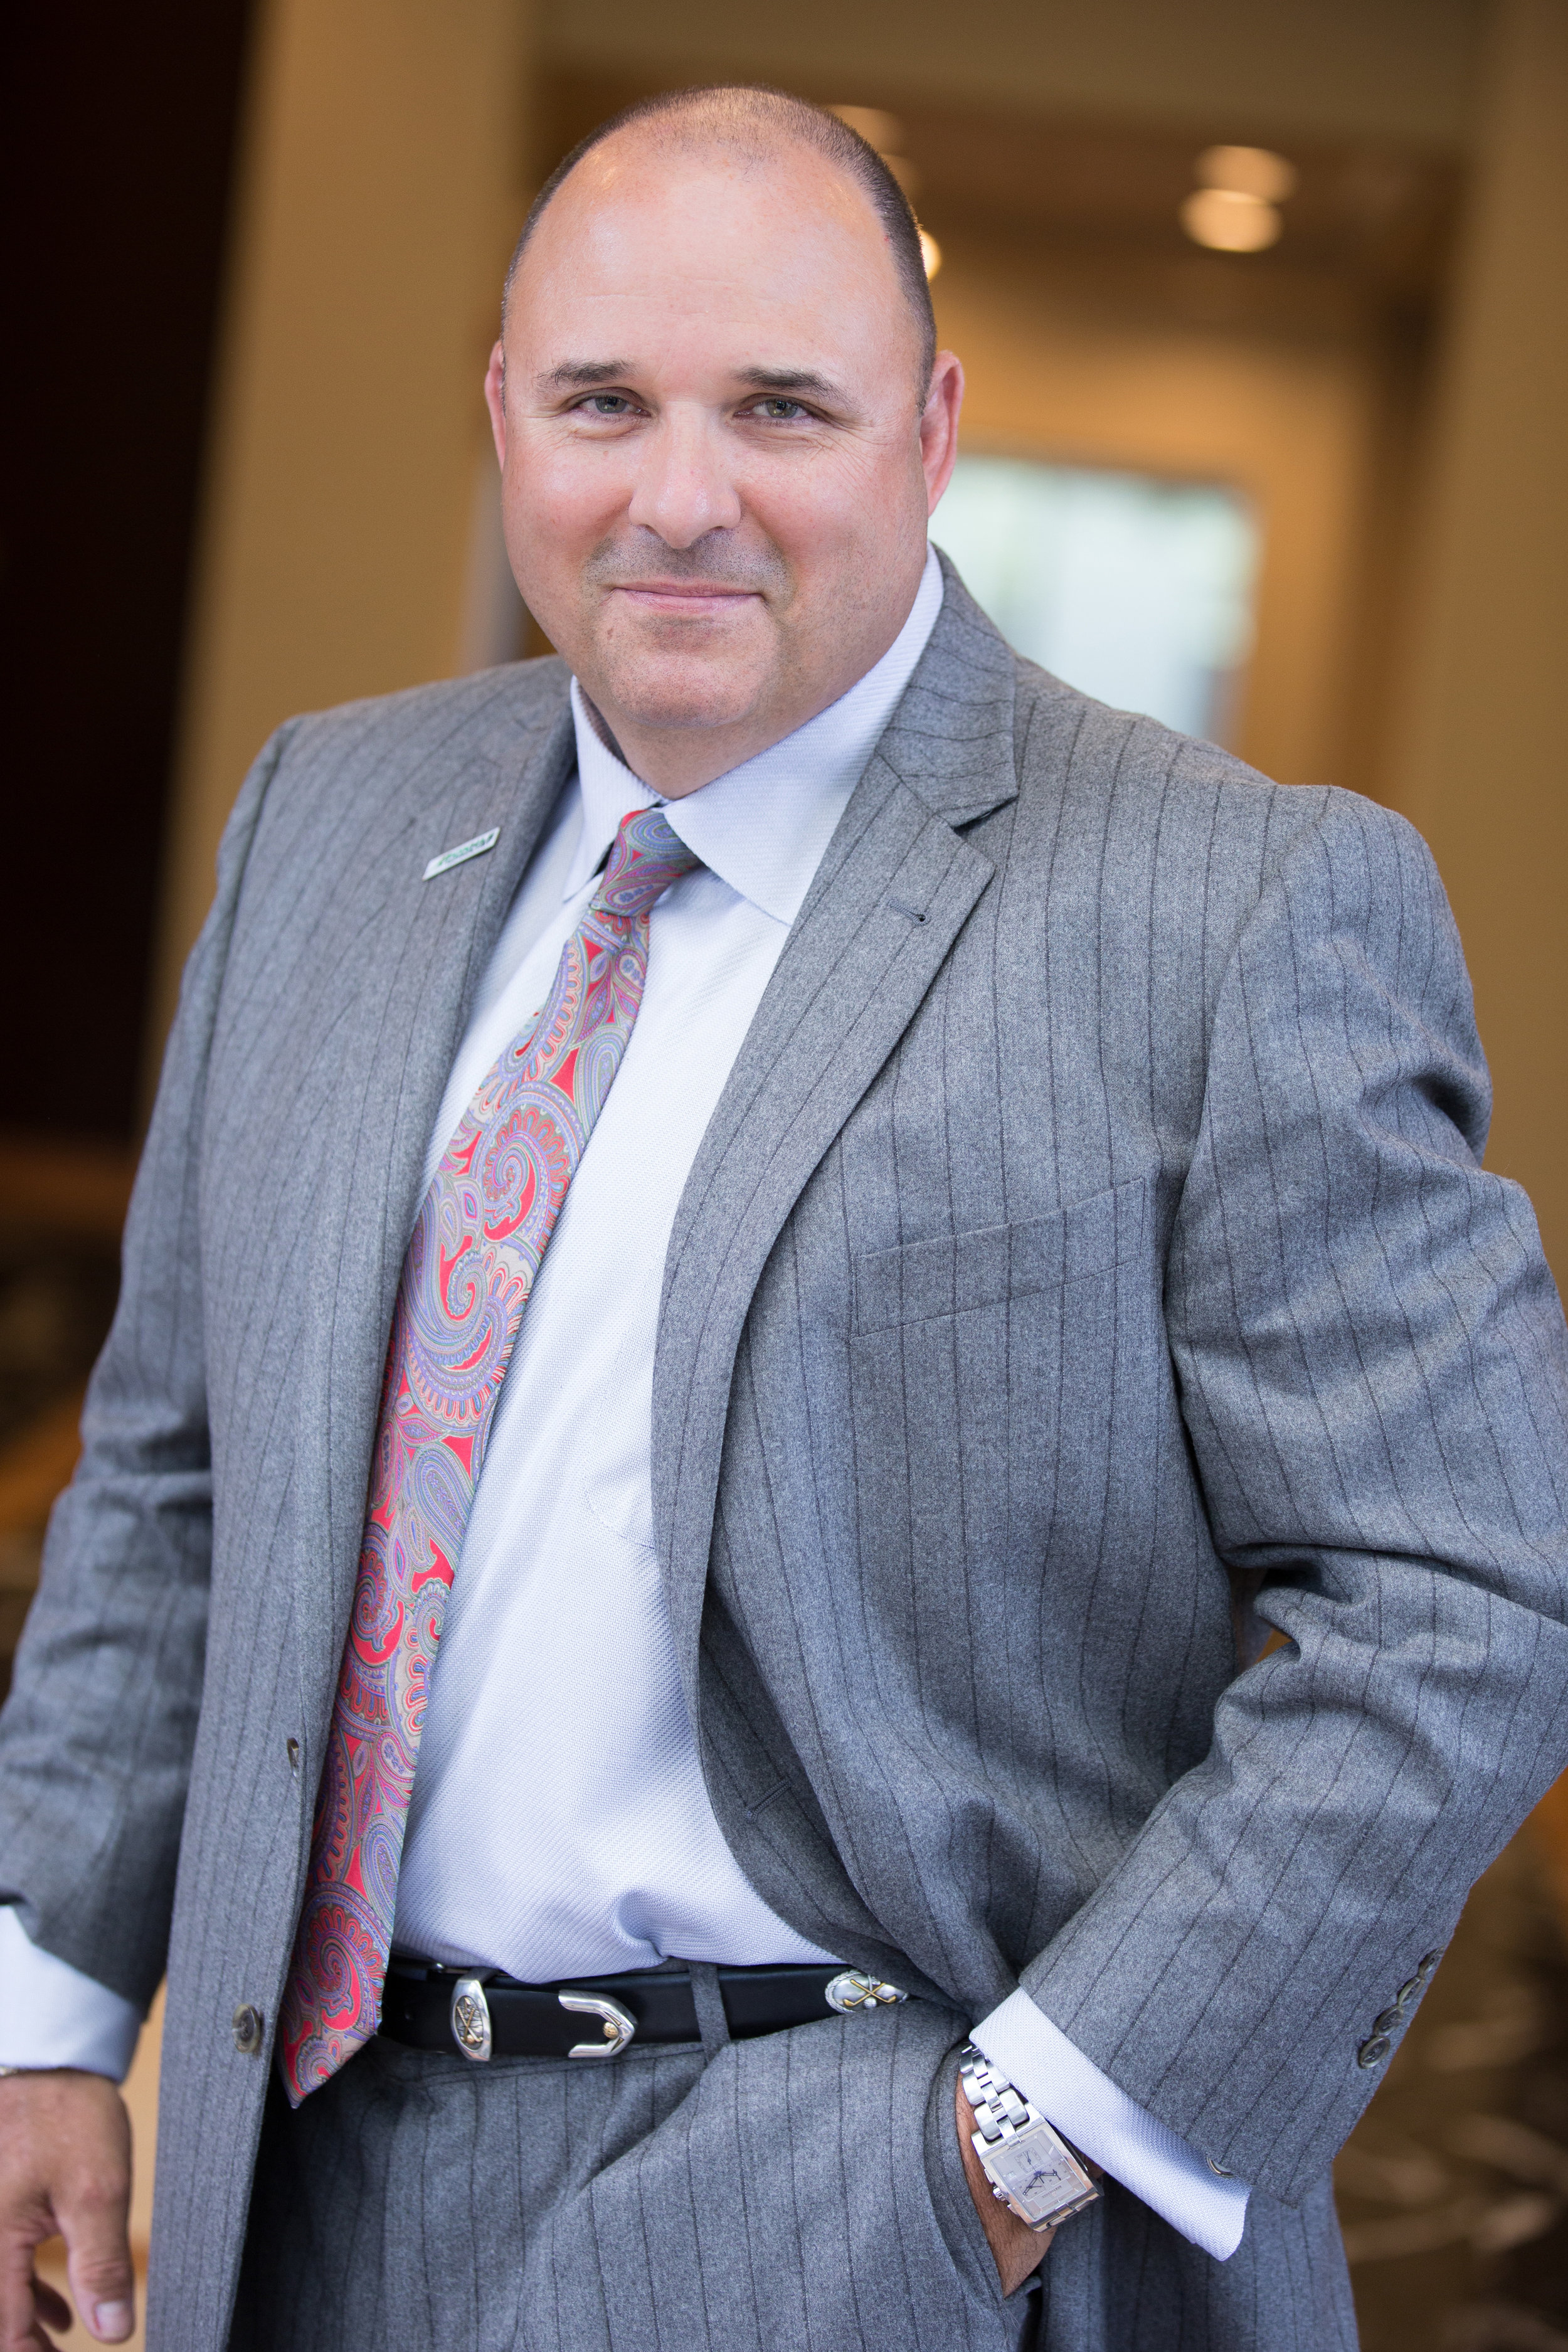 Wes Hester, CEO/President